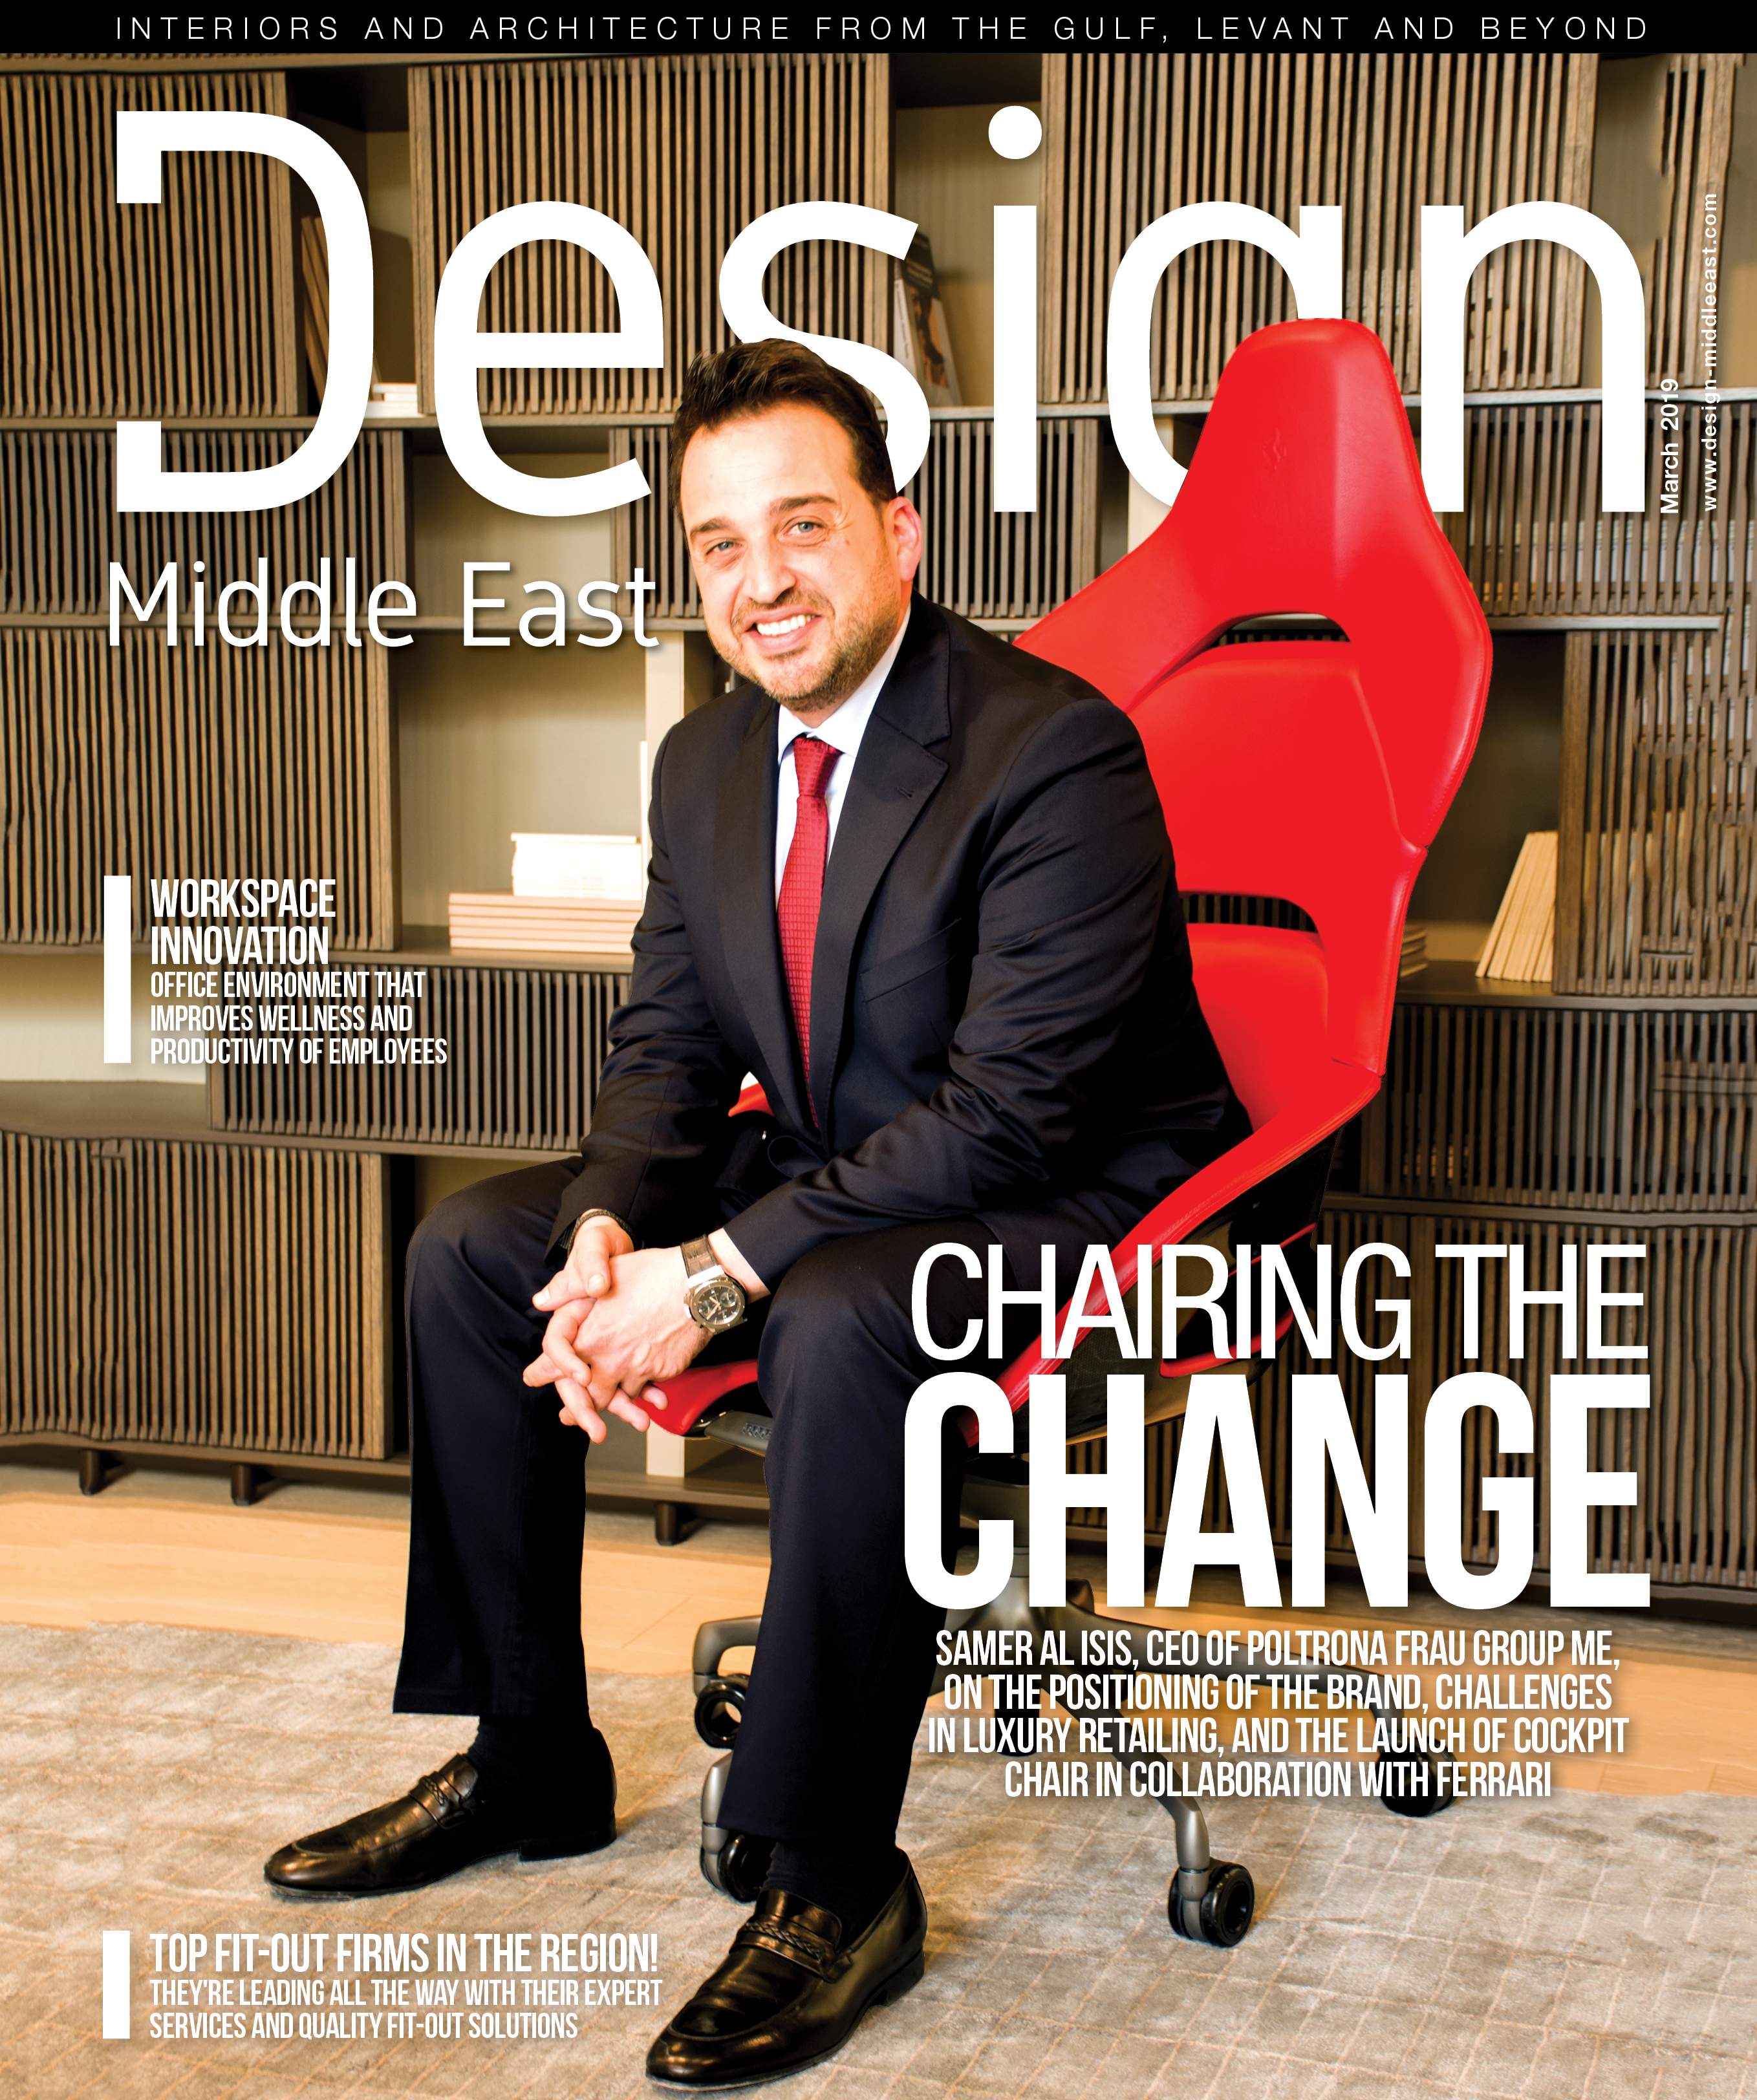 https://www.cbnme.com/magazines/design-middle-east-march-2019/